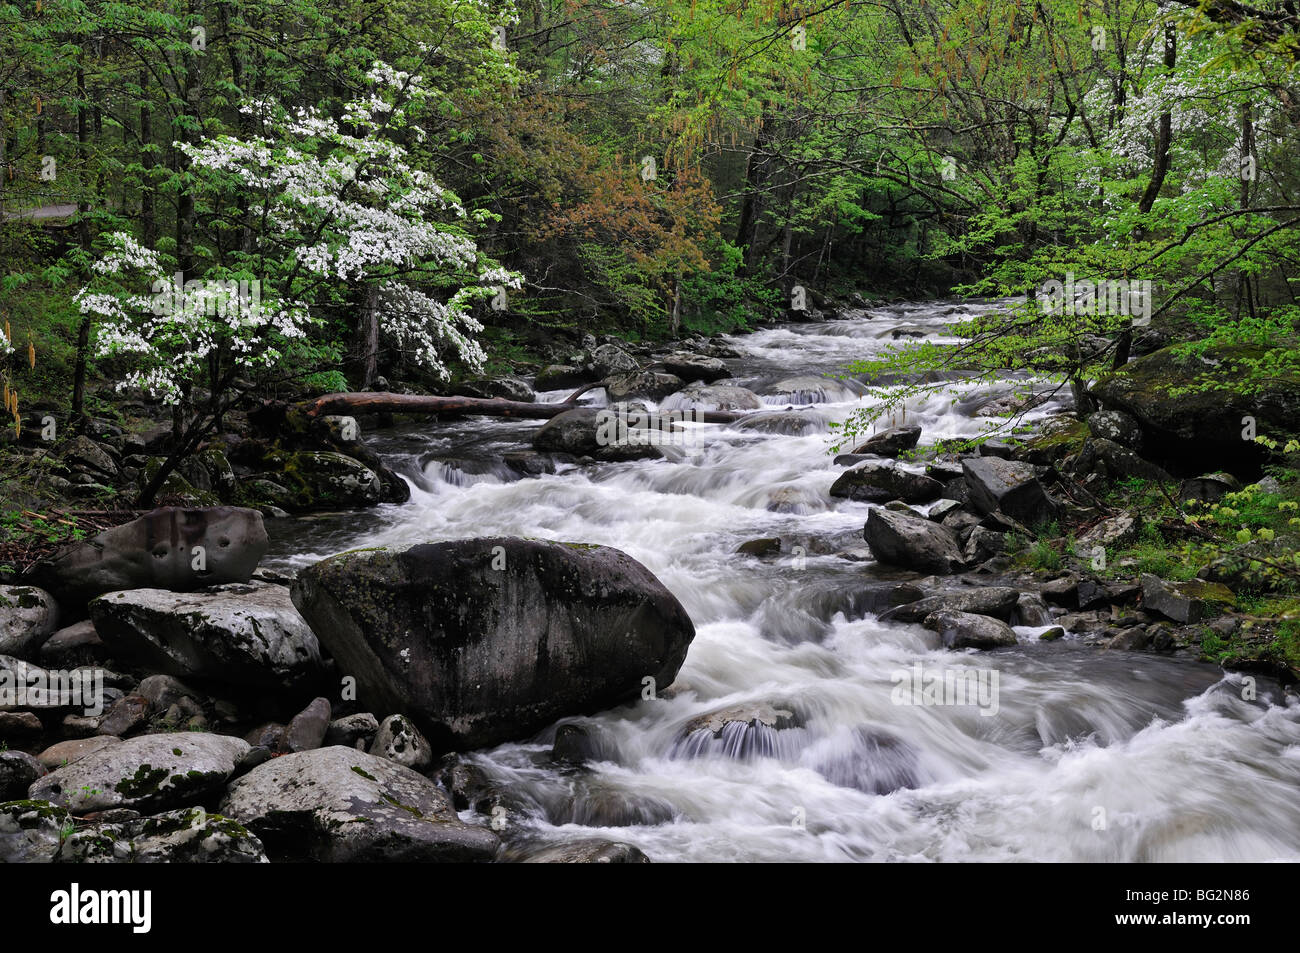 Spring Dogwoods in bloom along the Middle Prong of the Little River in Tremont Great Smoky Mountains National Park - Stock Image